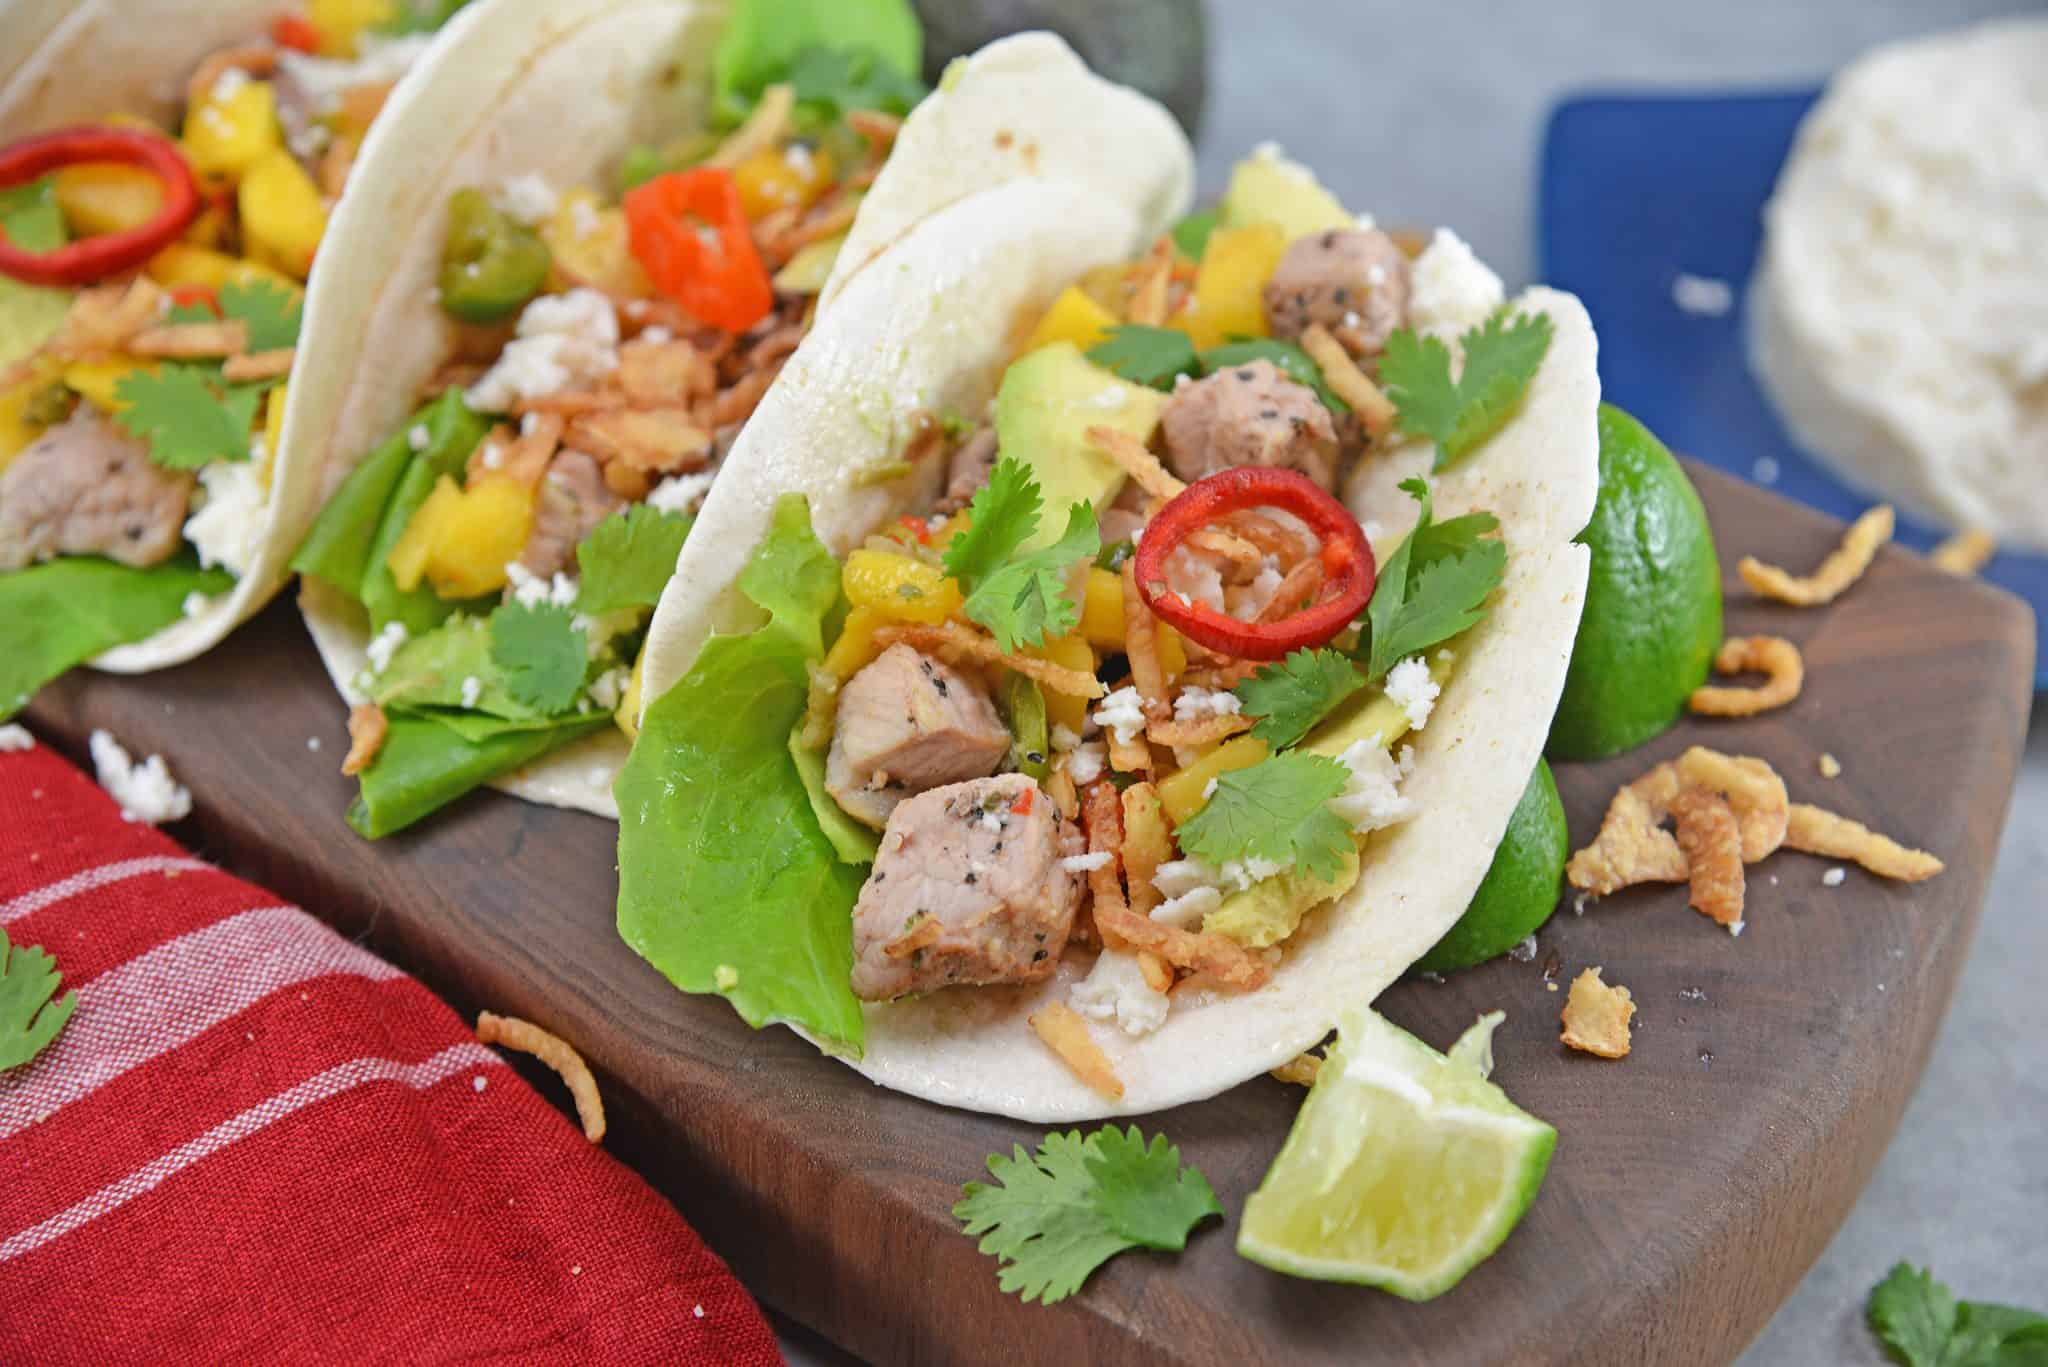 Crispy Pork Tacos are soft tacos filled with mango salsa, cool avocado, crumbly queso fresco, butter lettuce and crispy onion straws.